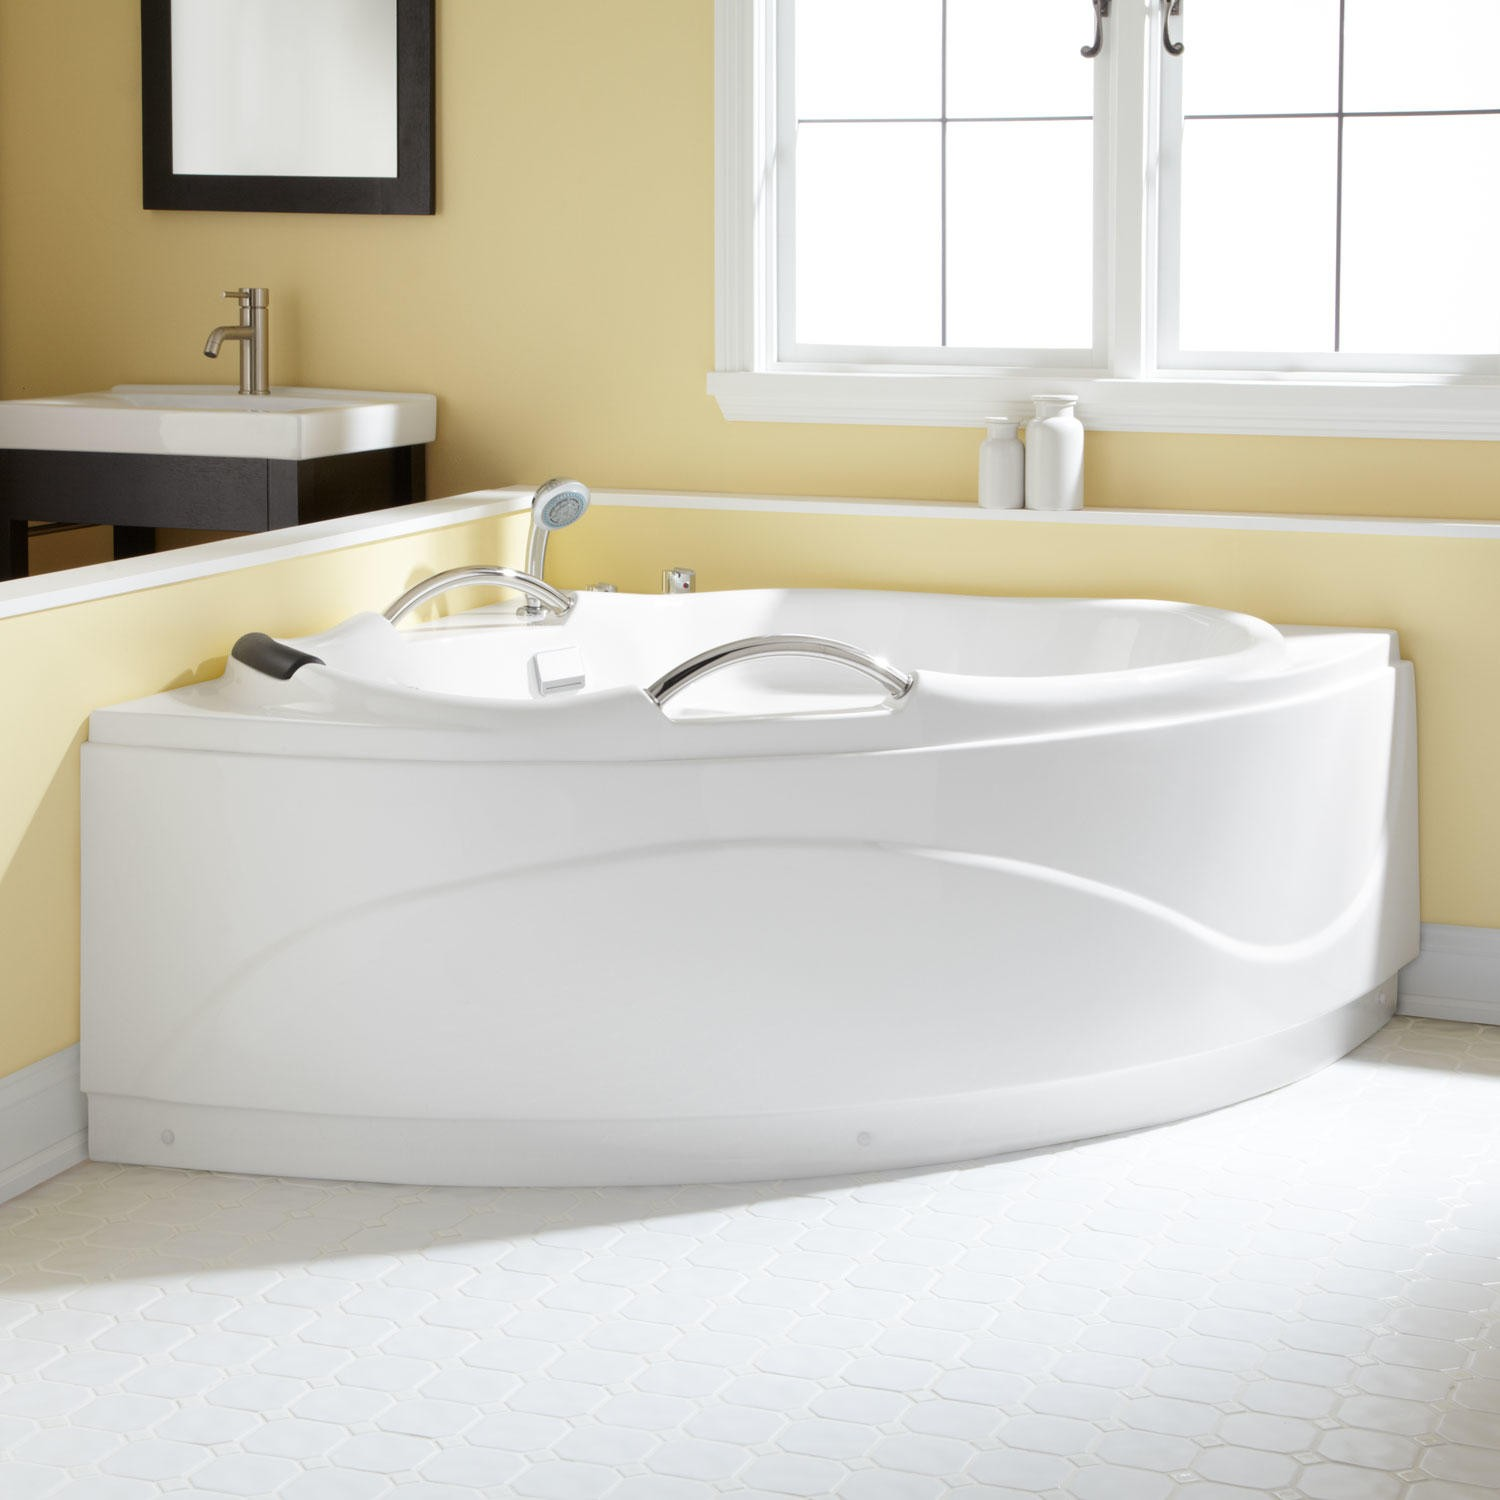 new-corner-bath-tubs